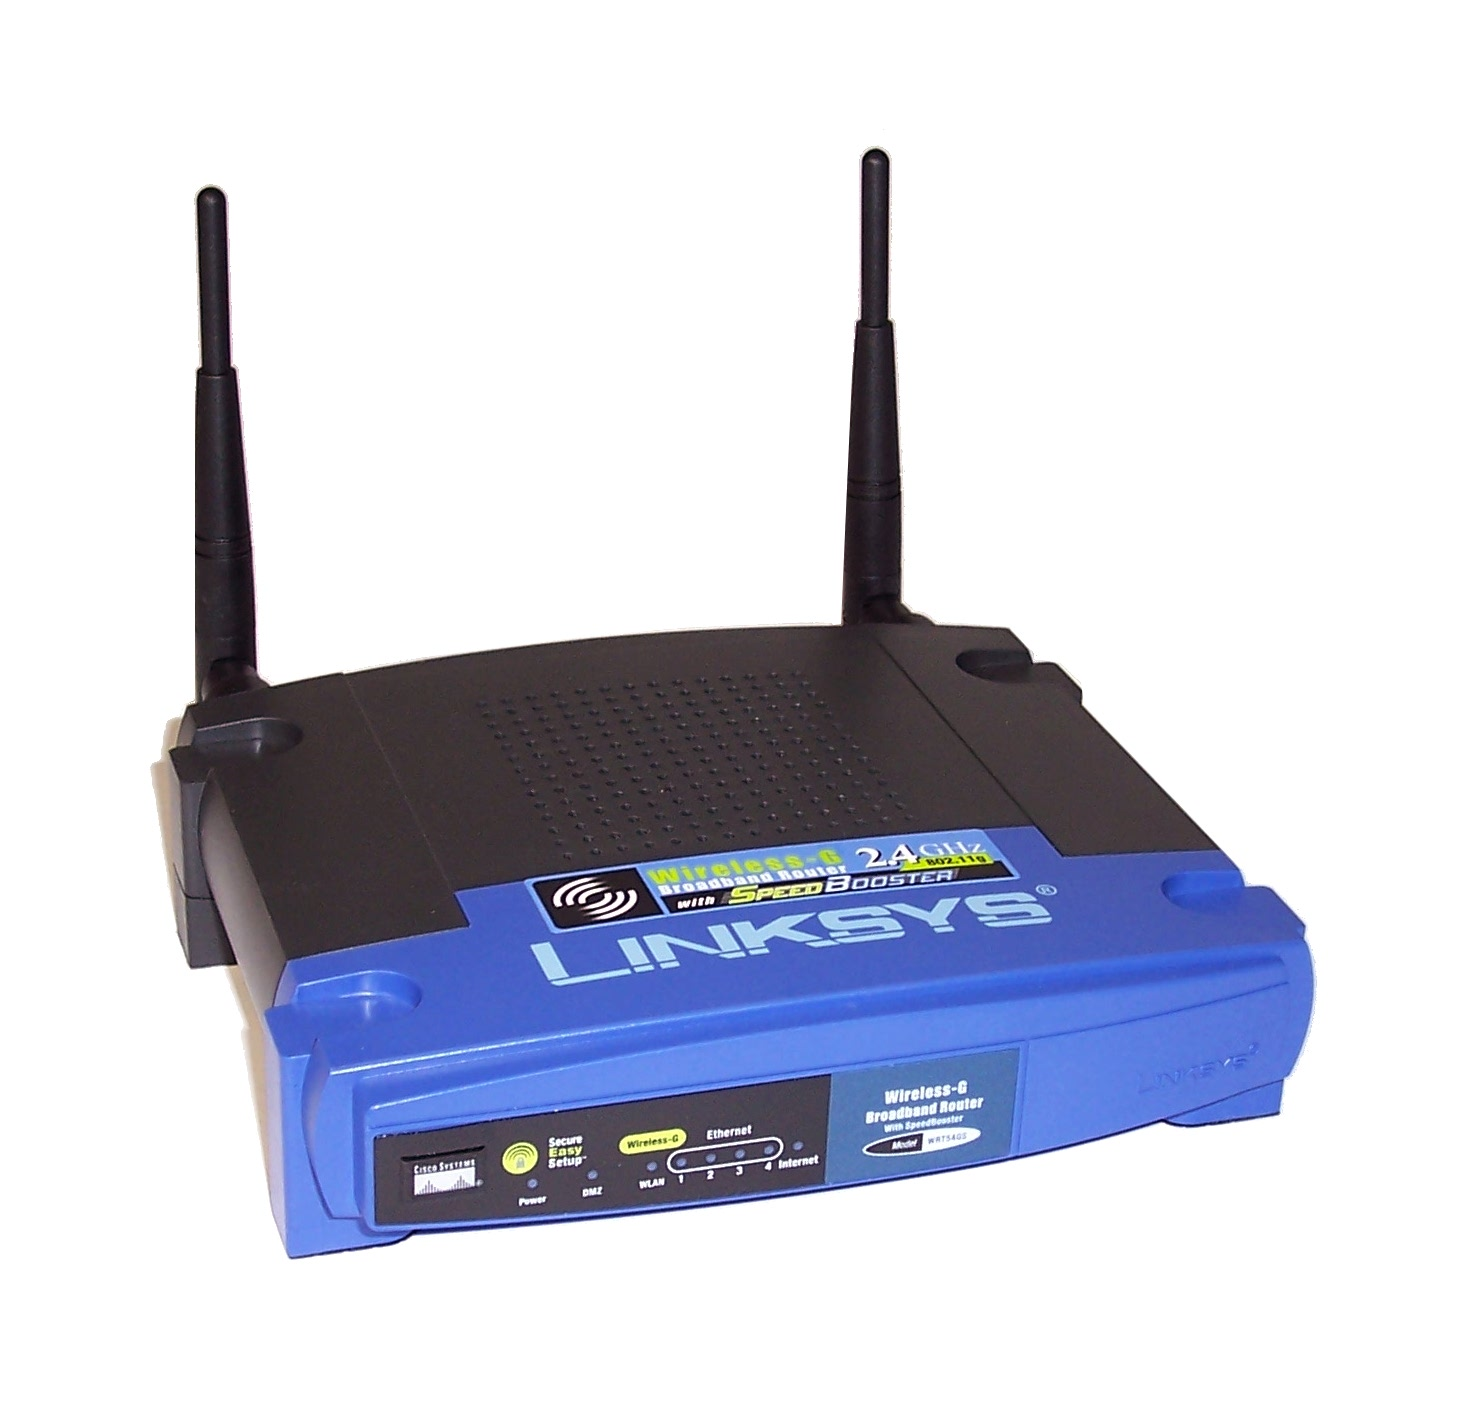 Linksys hookup instructions How do I properly setup